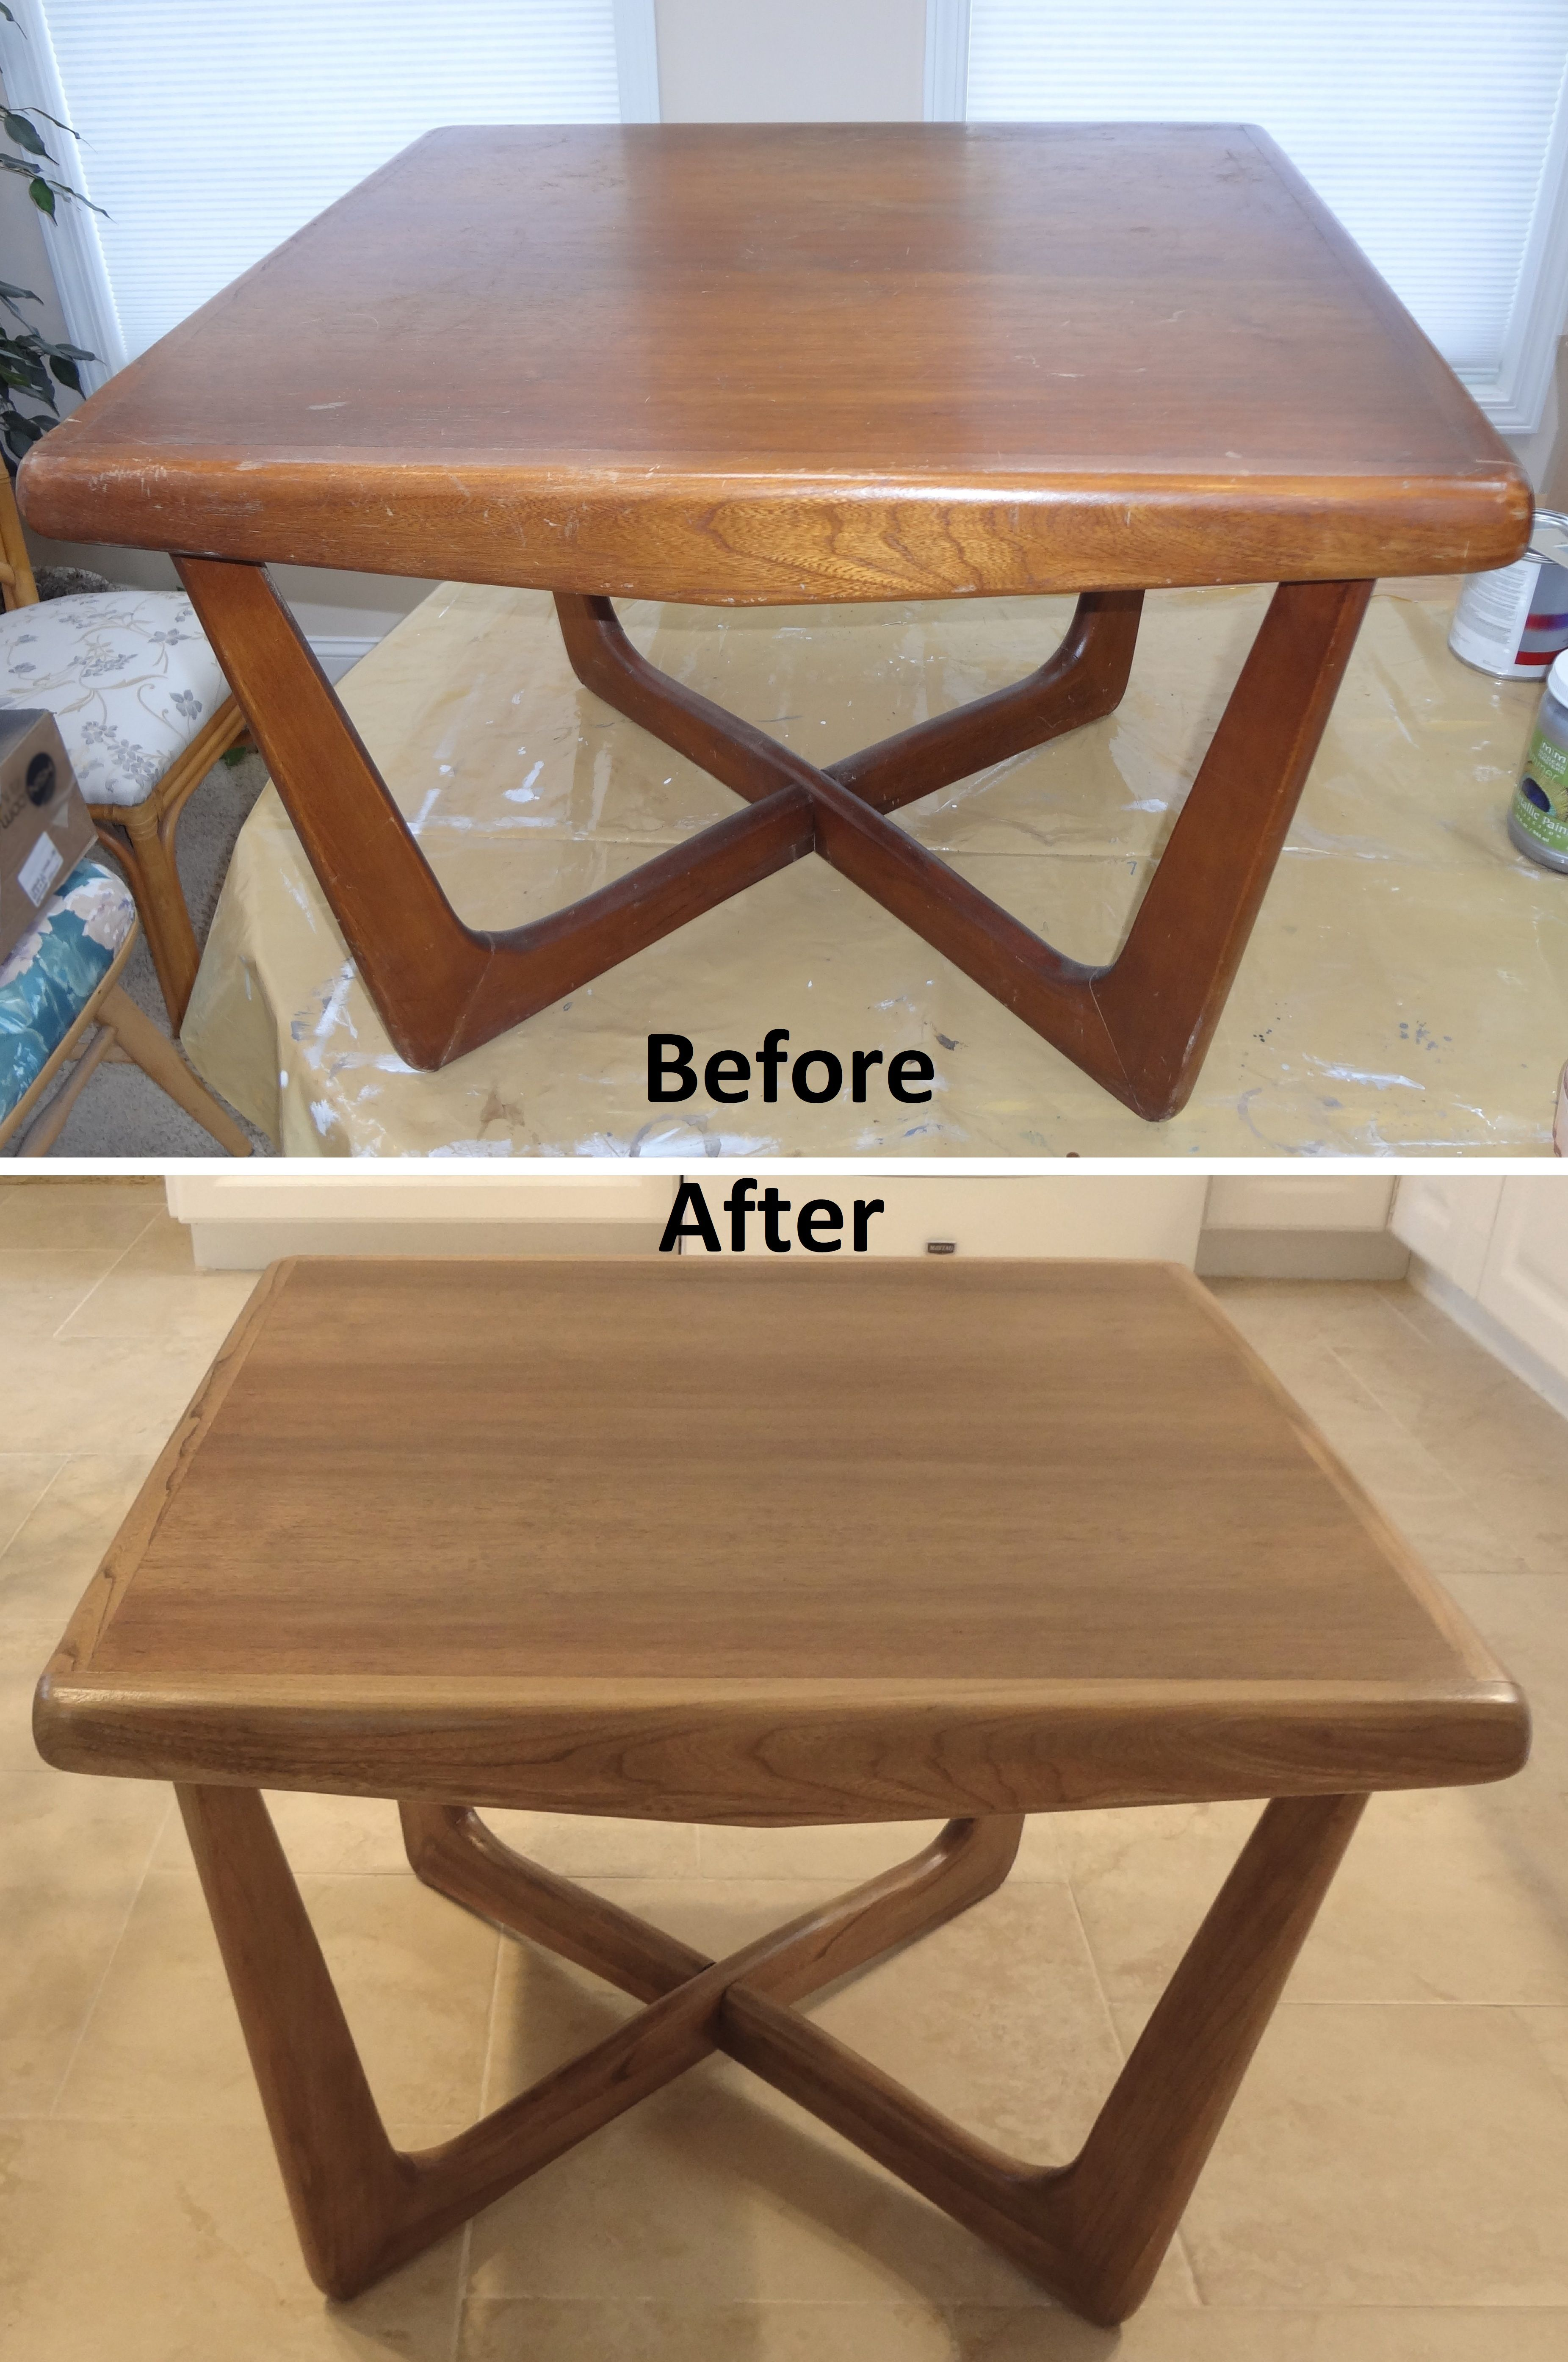 Before And After Refinished Walnut Wood Coffee Tail End Side Table Fnr Forever New Furniture Refinishing Nj